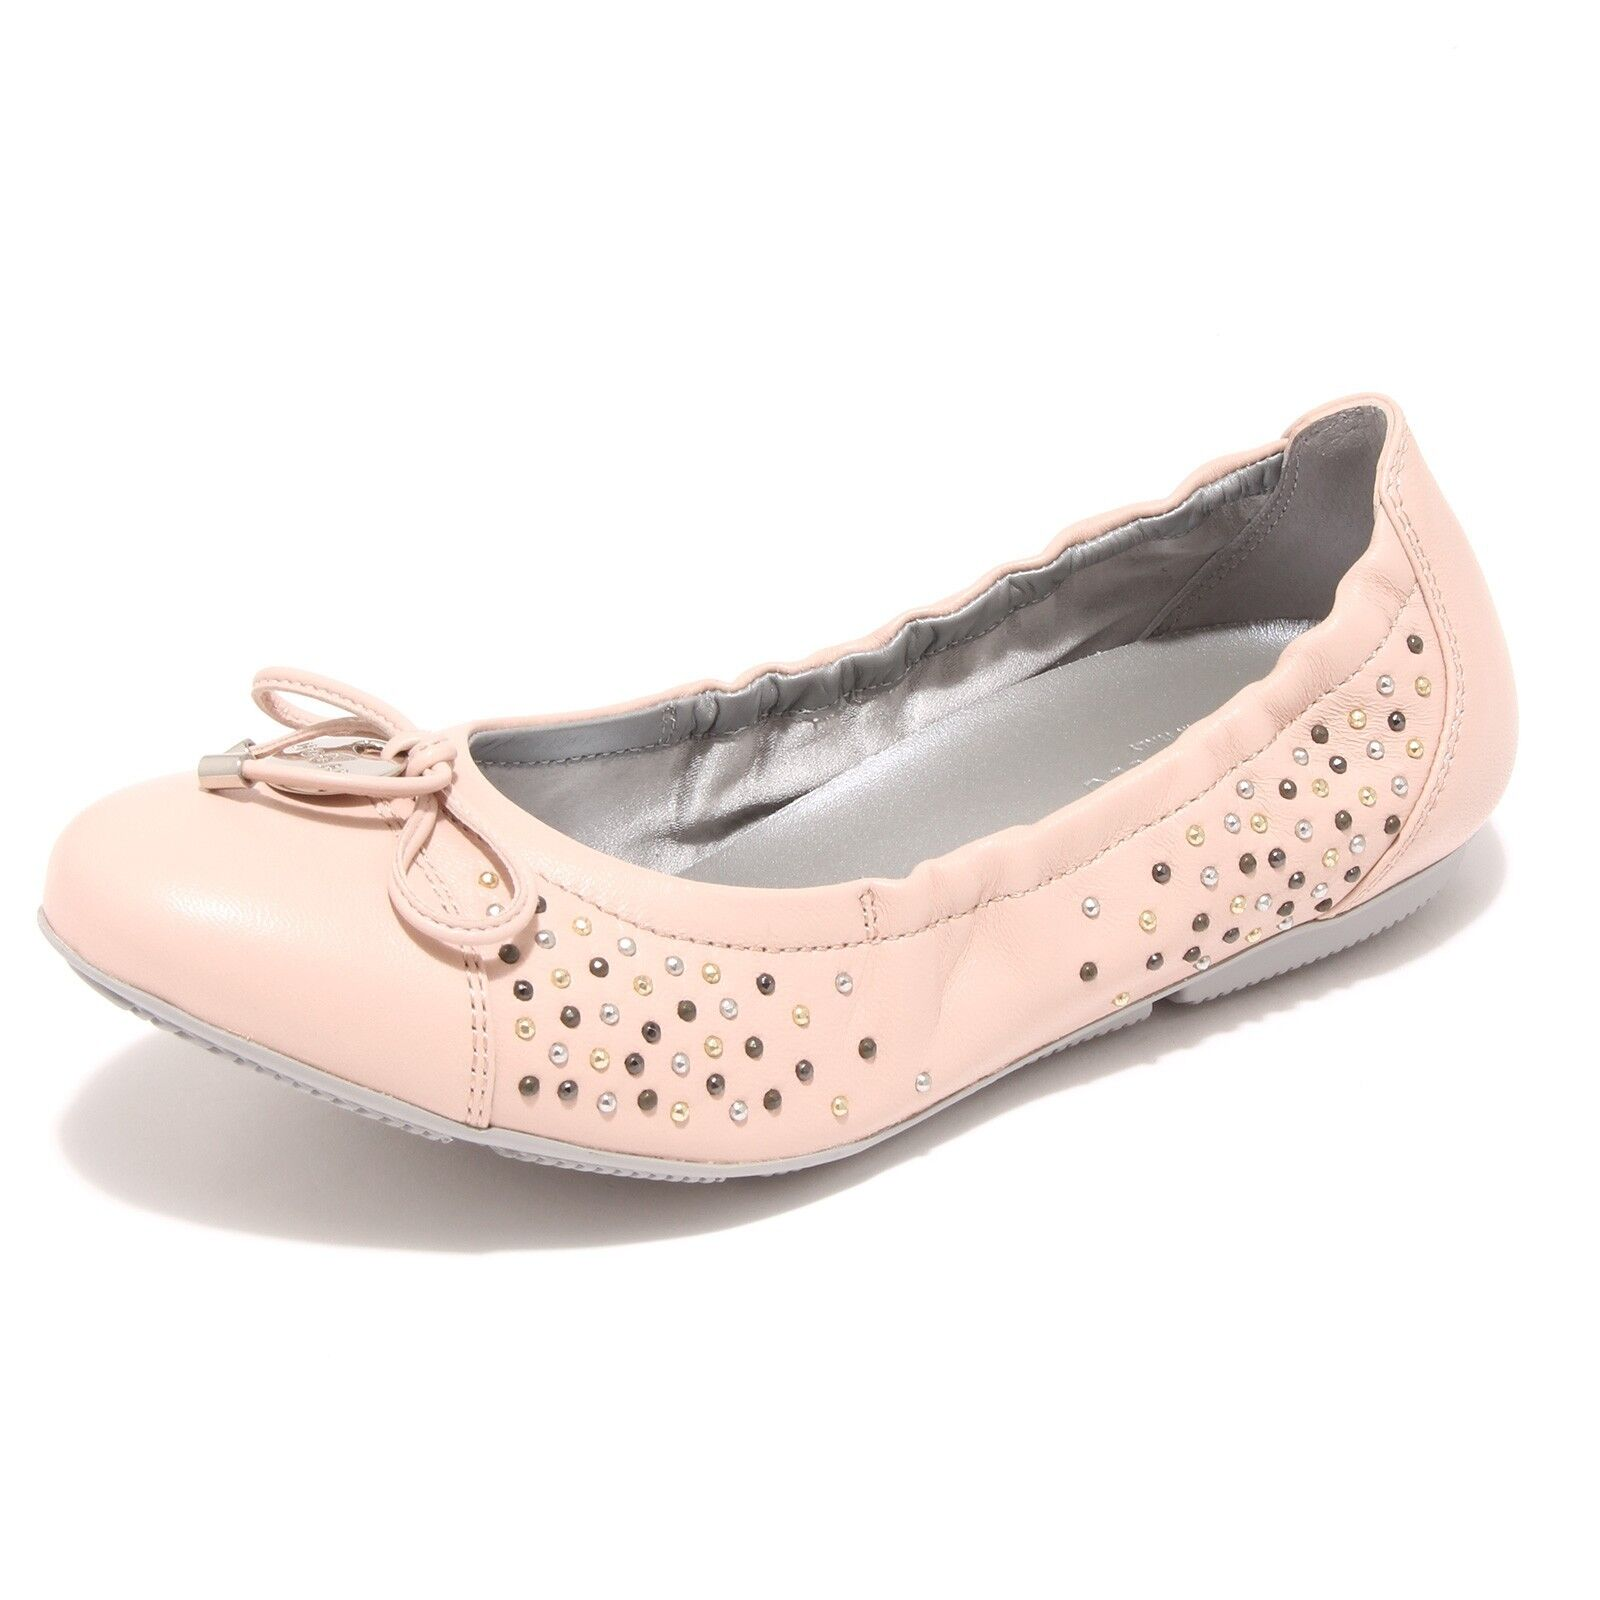 56969 ballerina HOGAN WRAP 144 scarpa donna shoes women